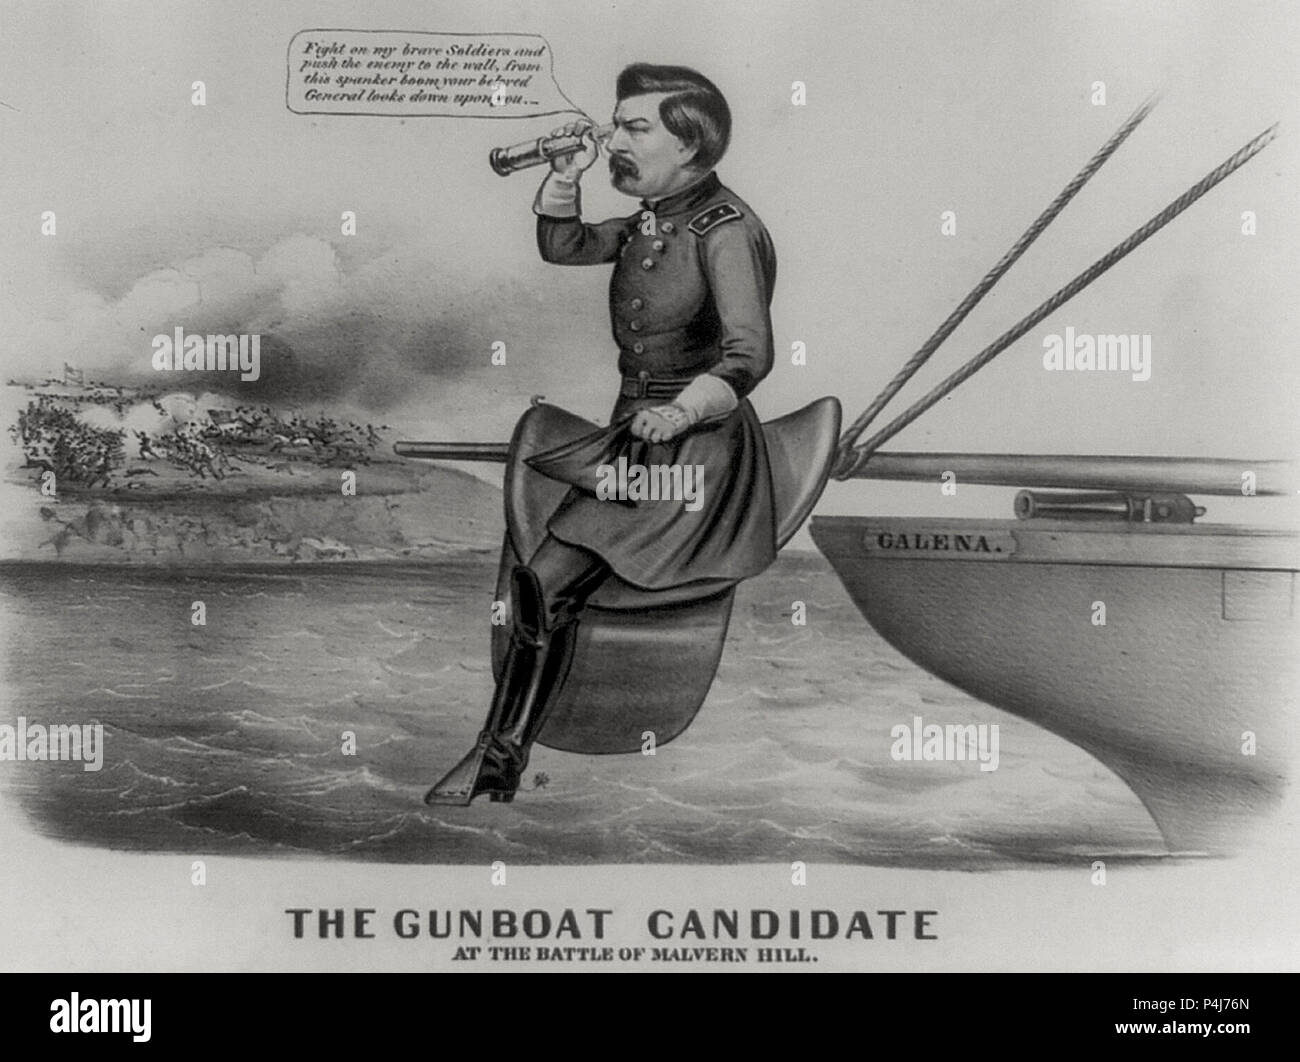 The gunboat candidate at the Battle of Malvern Hill - Democratic presidential candidate George Brinton McClellan is lampooned as an incompetent military leader. He sits in a saddle mounted on the boom of the Union ironclad vessel 'Galena.' 1864 Presidential Campaign - Stock Image